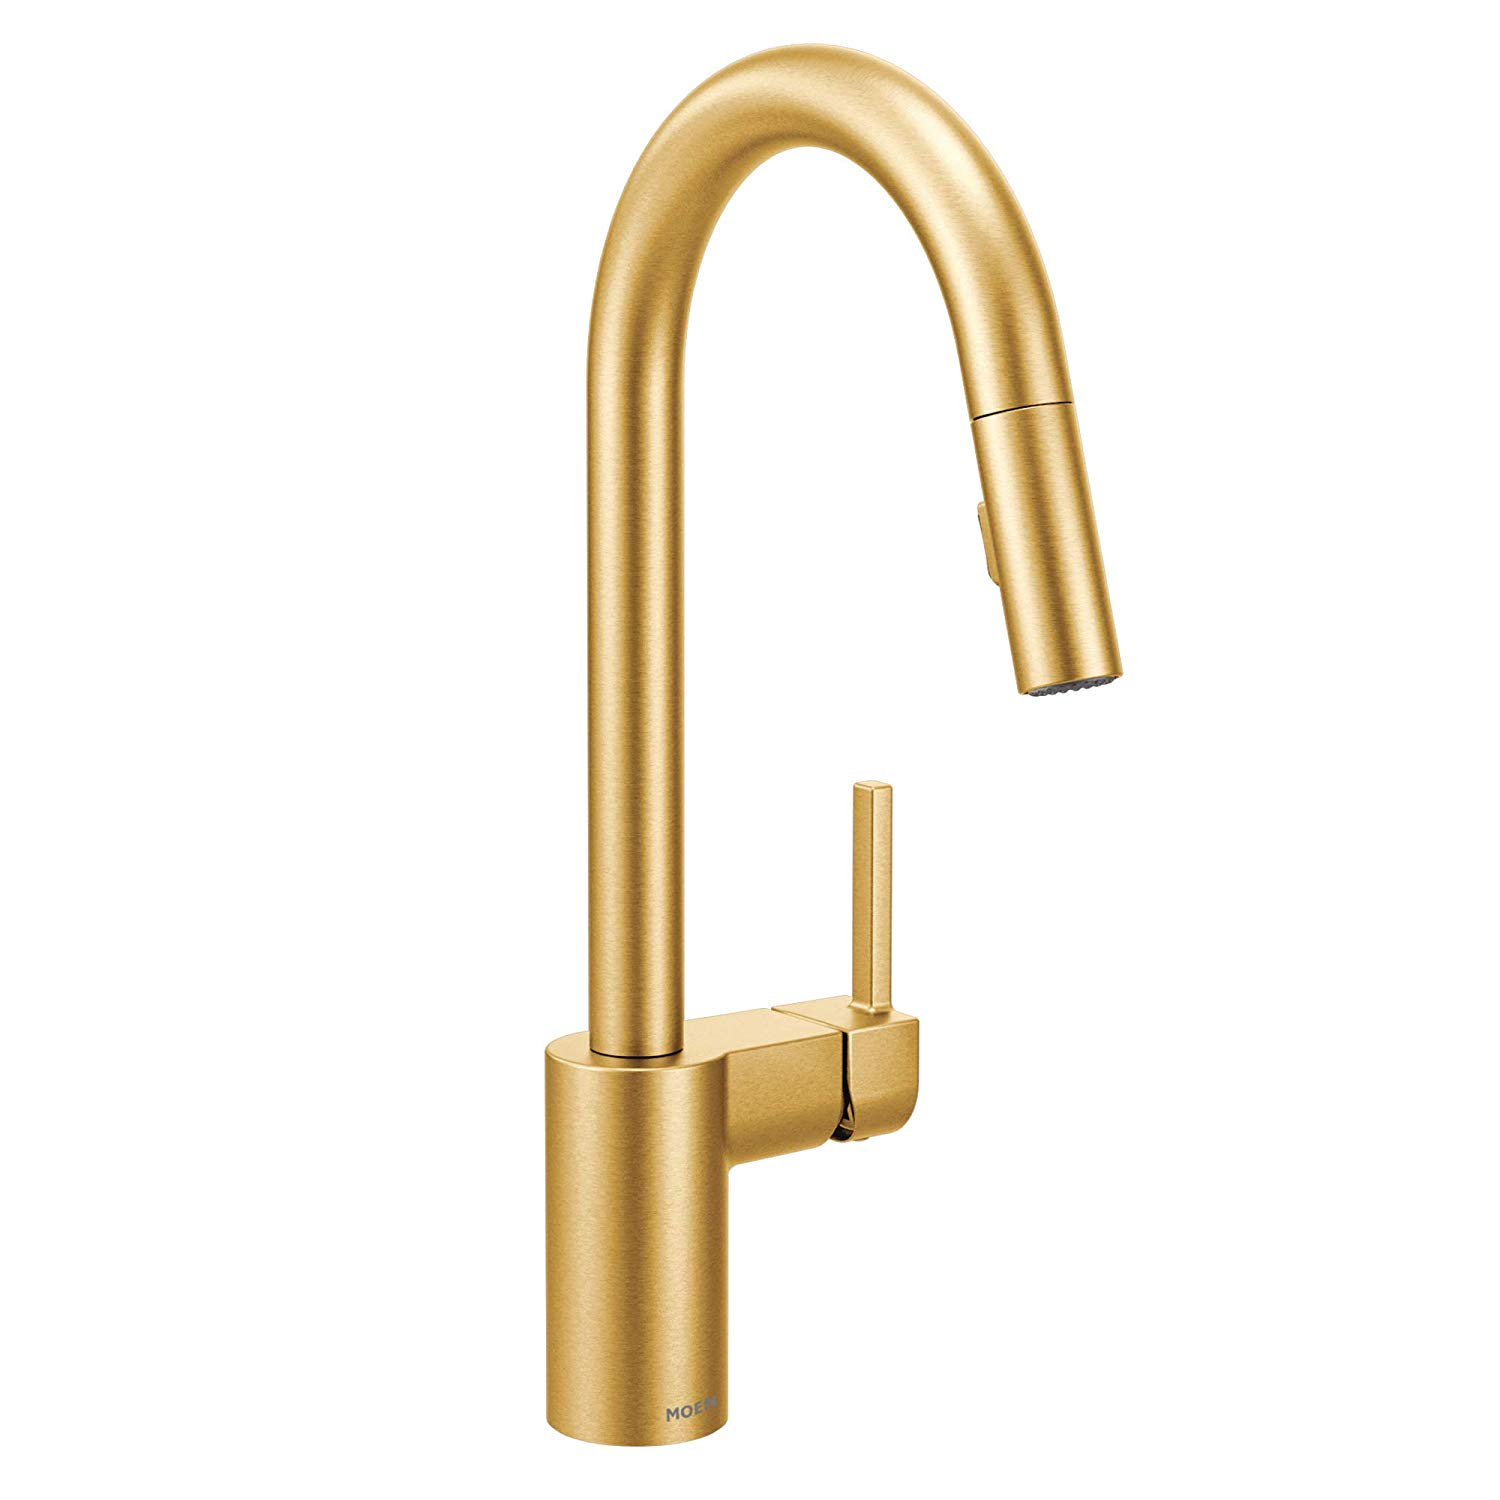 The High/Low List by Nadine Stay - Featuring Brass Accents. High end pieces and their (cheaper) twins. Brass home decor, furniture, and accessories. Brass kitchen faucet from Moen.